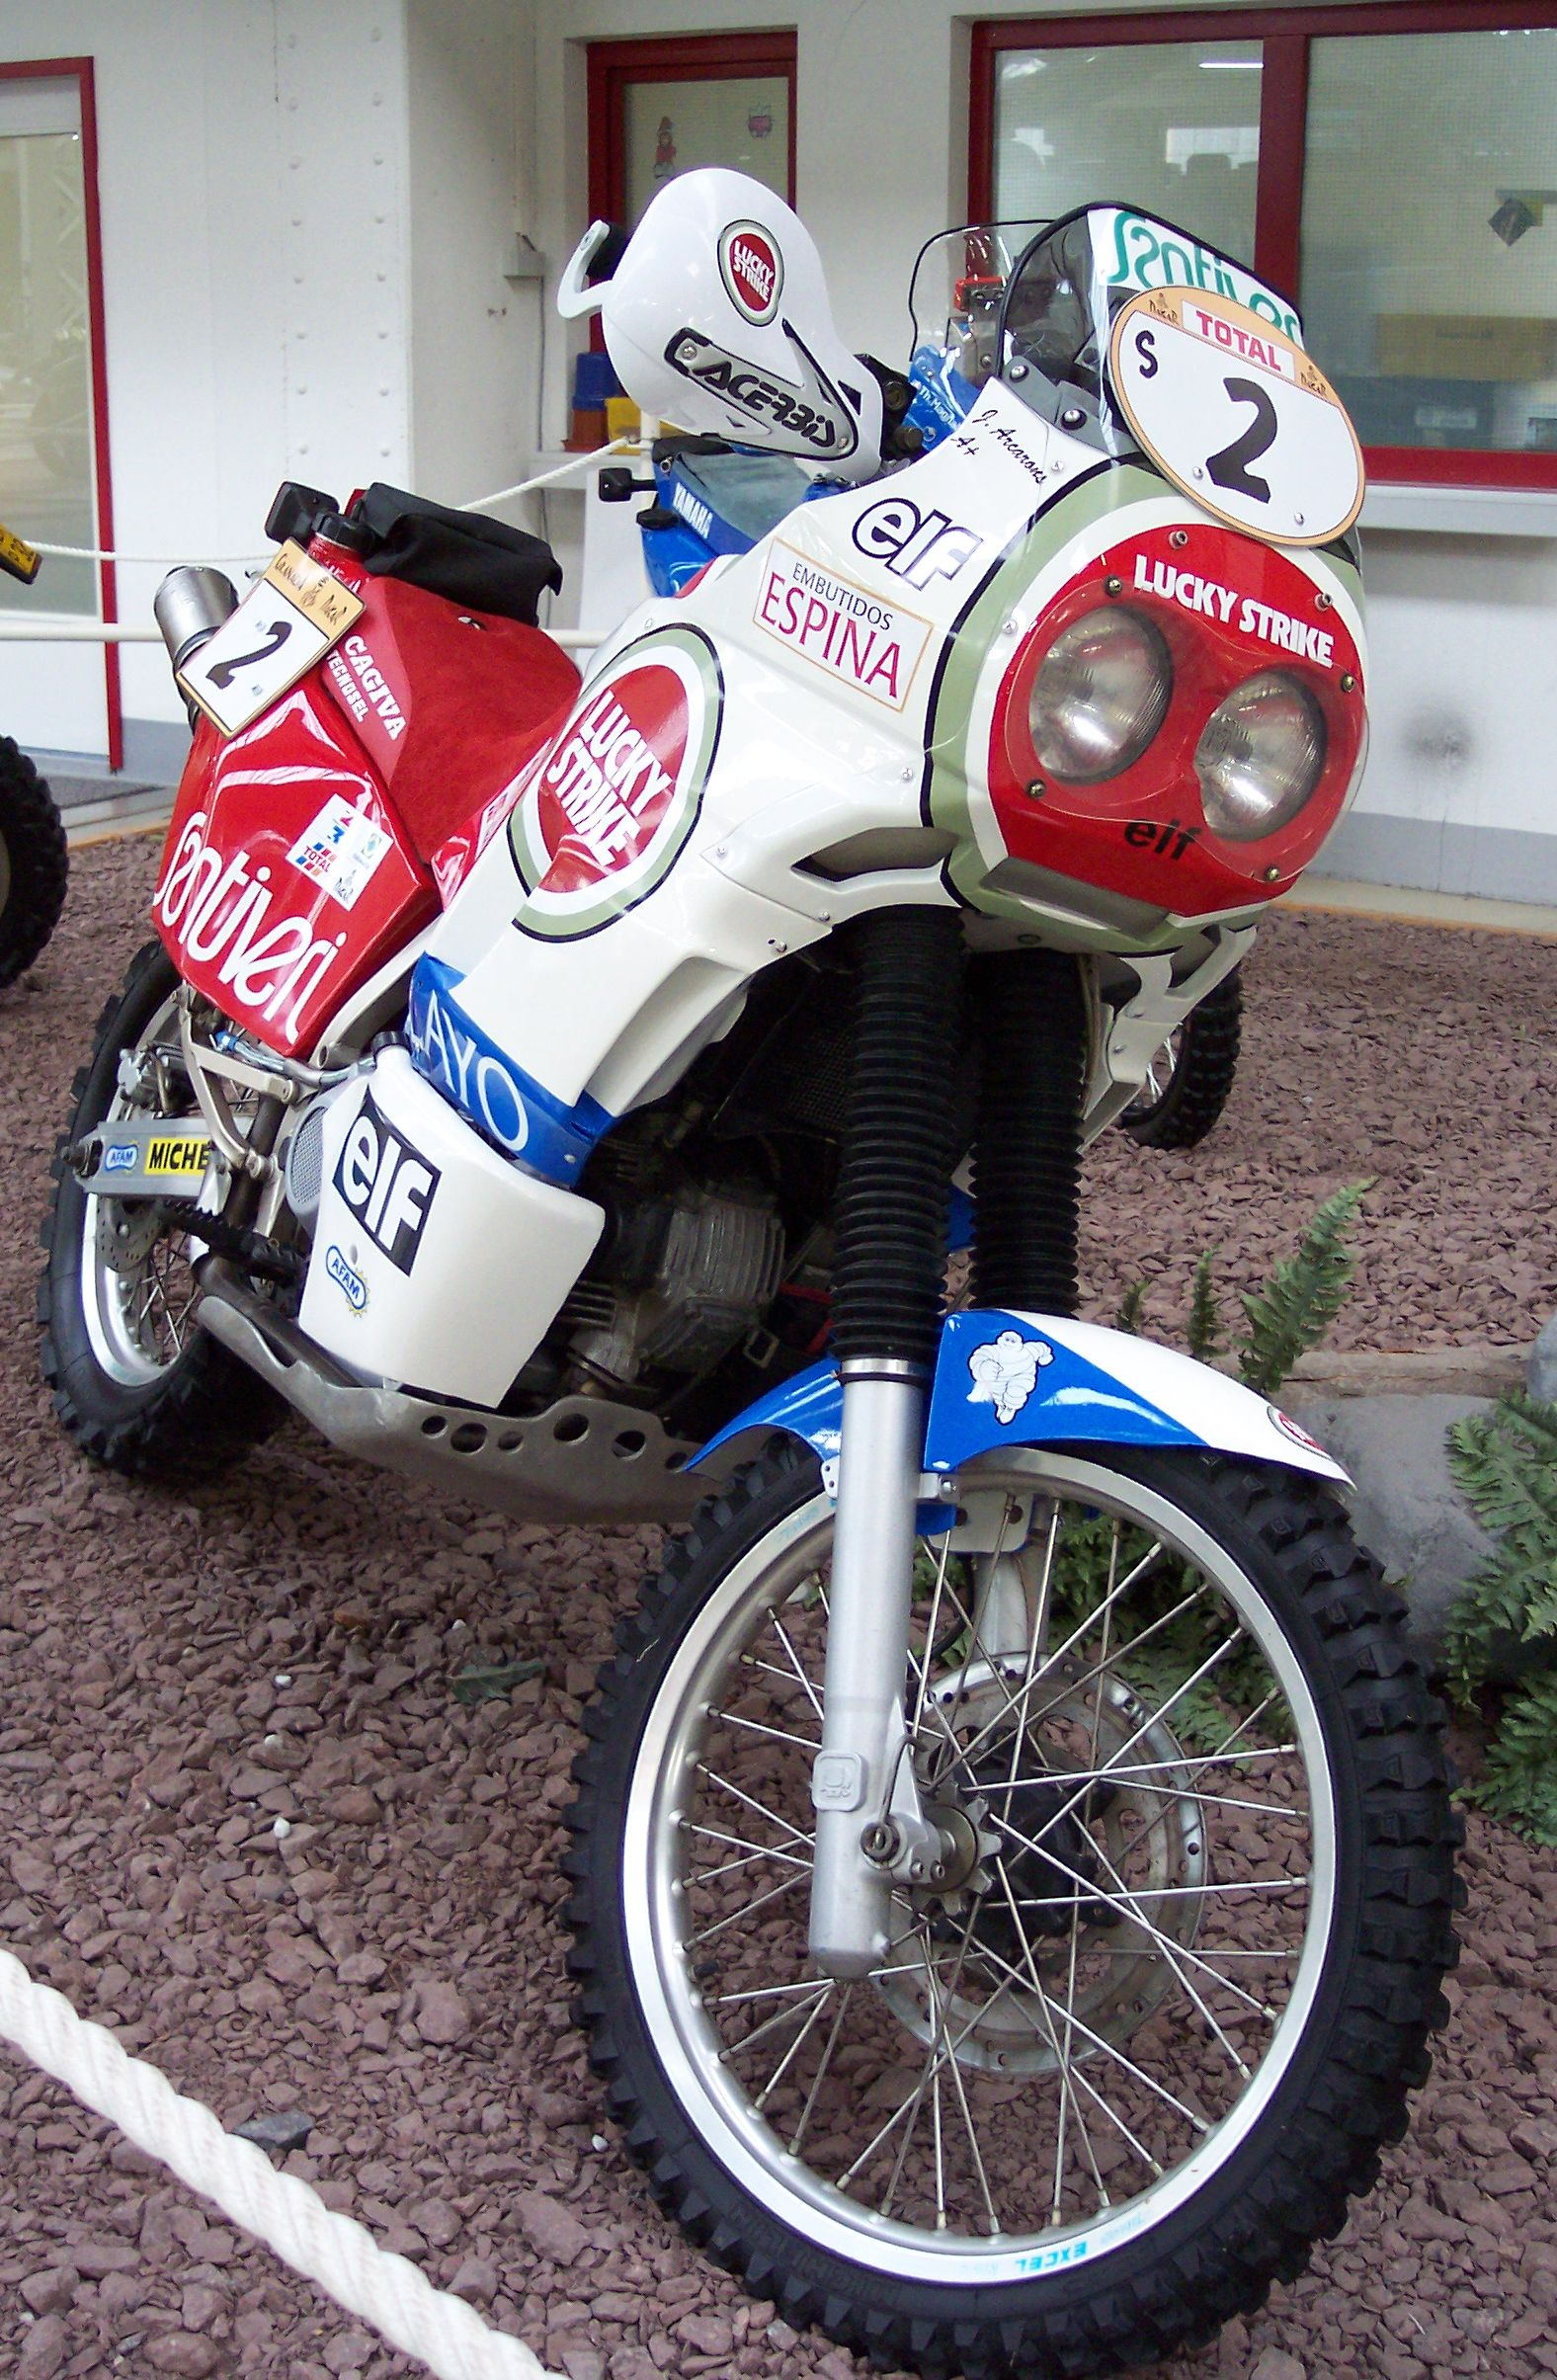 Cagiva Elefant 900 IE Lucky Strike images #69016